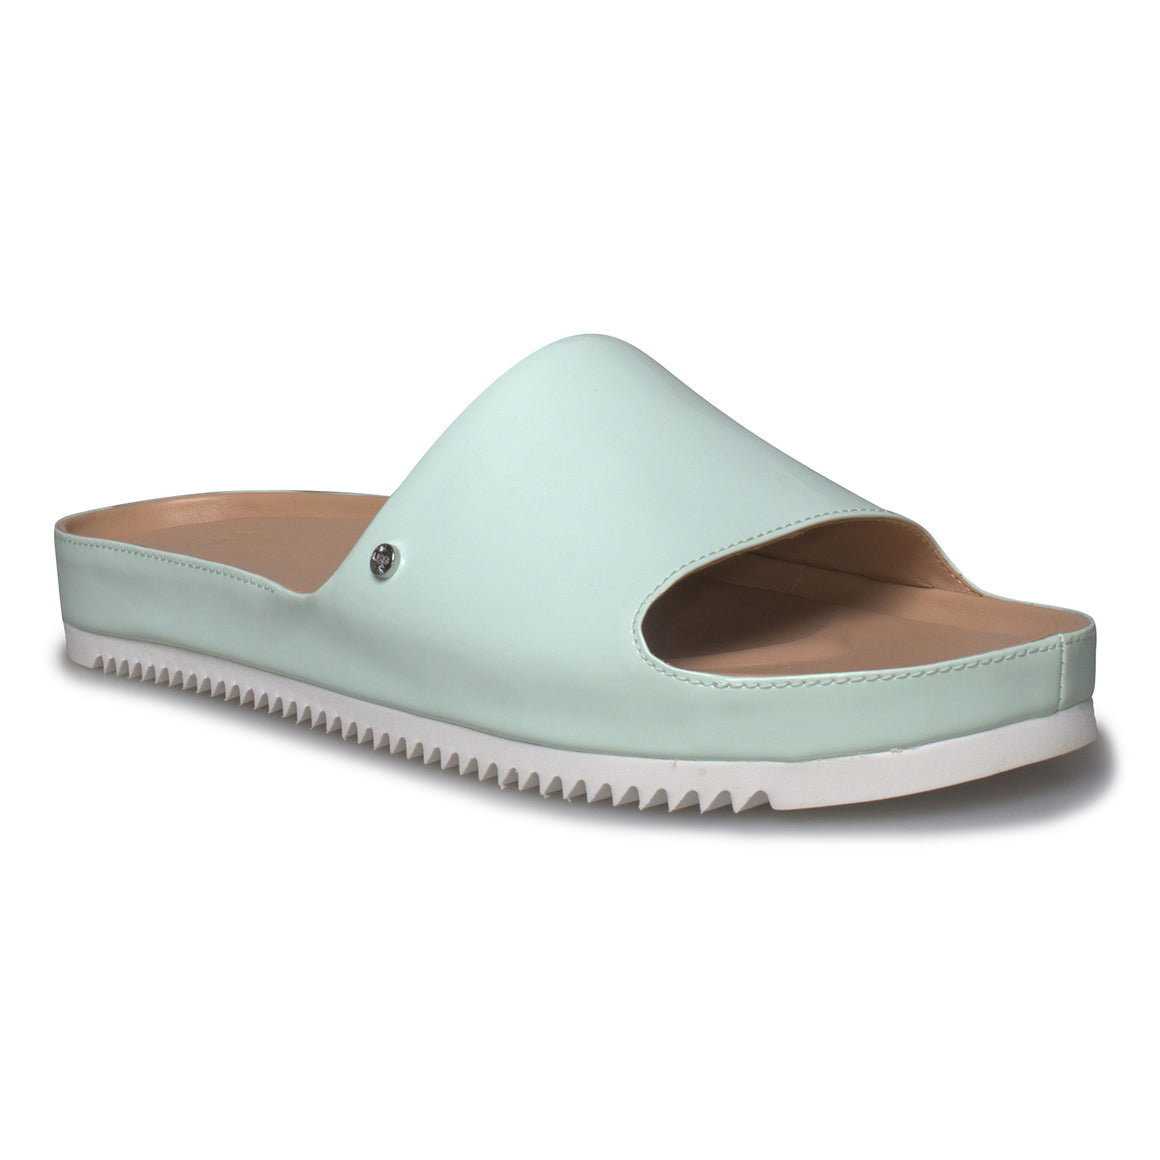 UGG Jane Patent Agave Glow Slip On Sandals - Women's